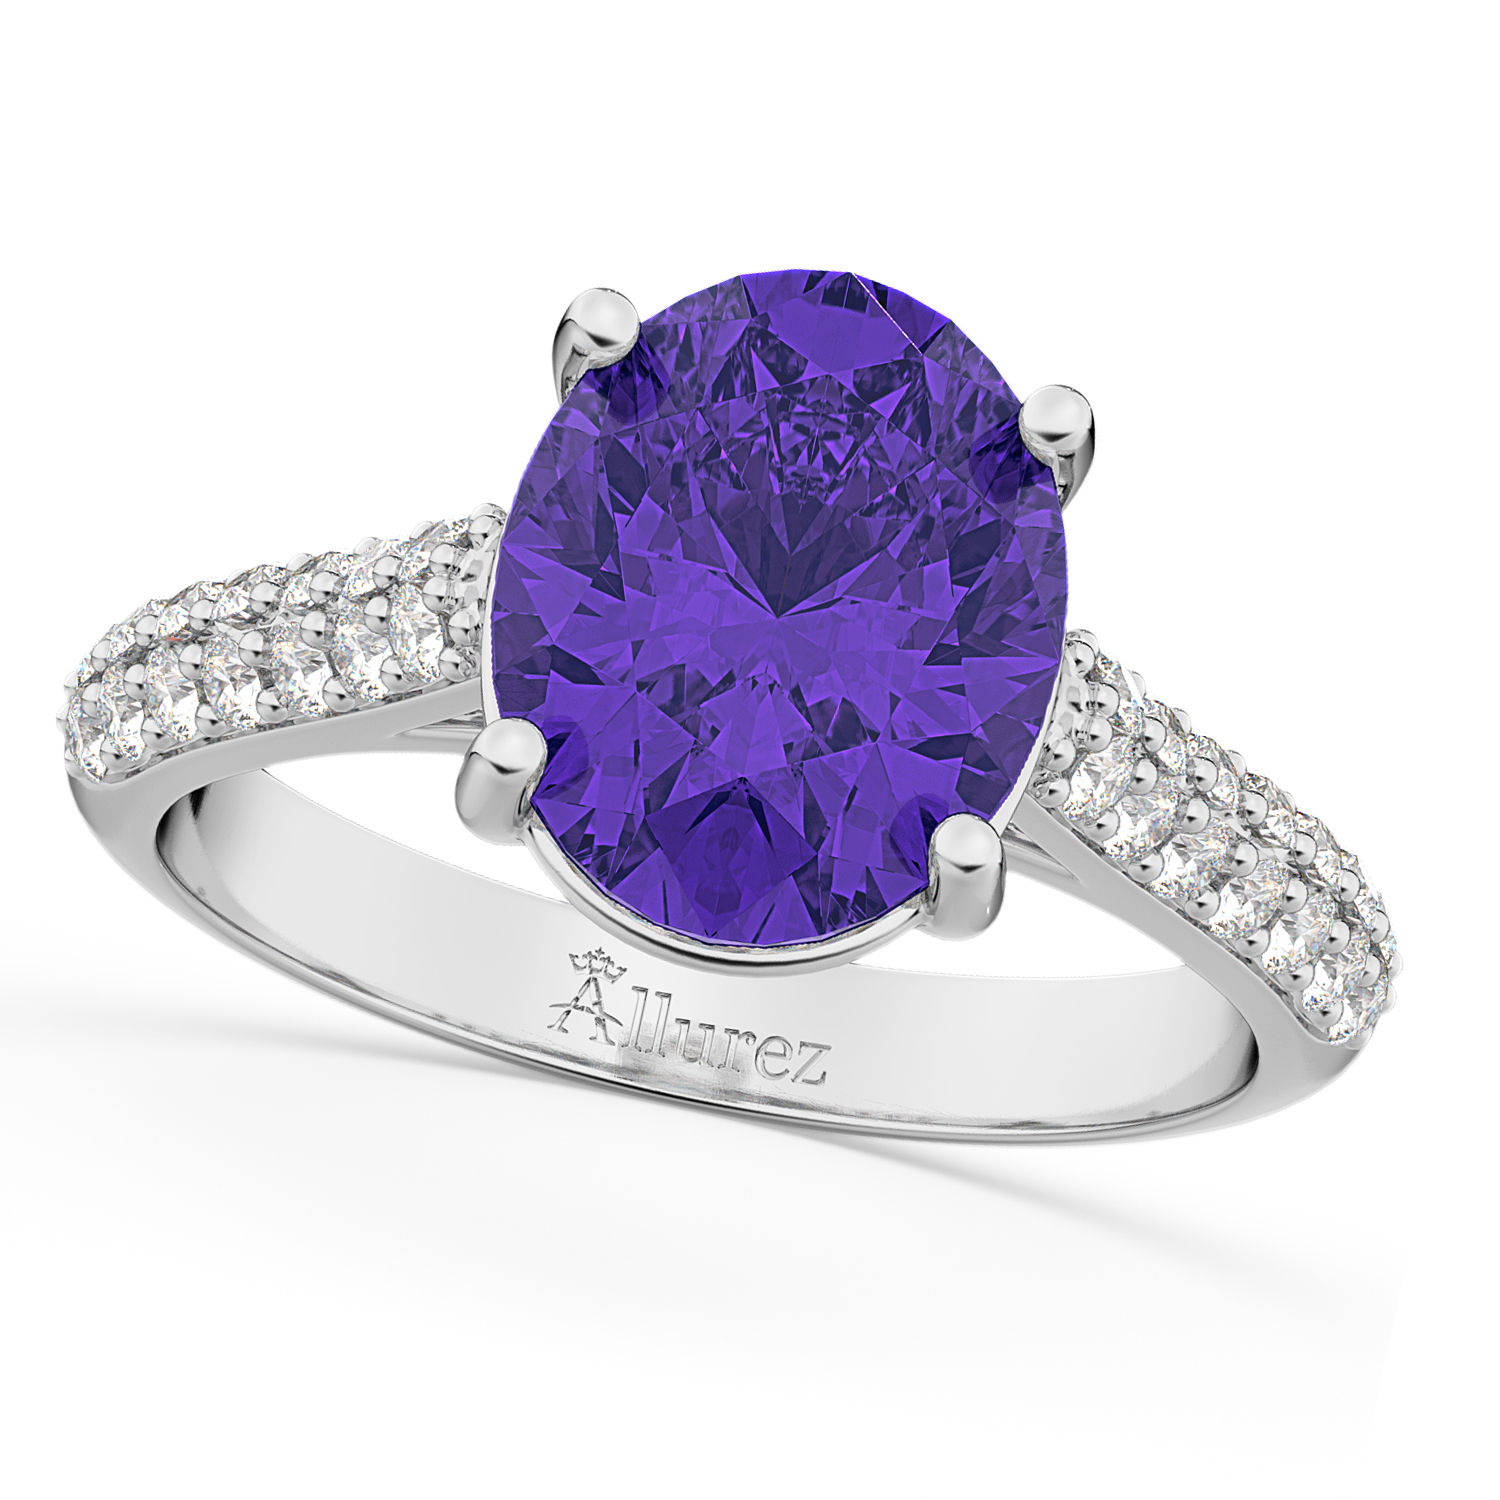 oval tanzanite diamond engagement ring 18k white gold 4. Black Bedroom Furniture Sets. Home Design Ideas